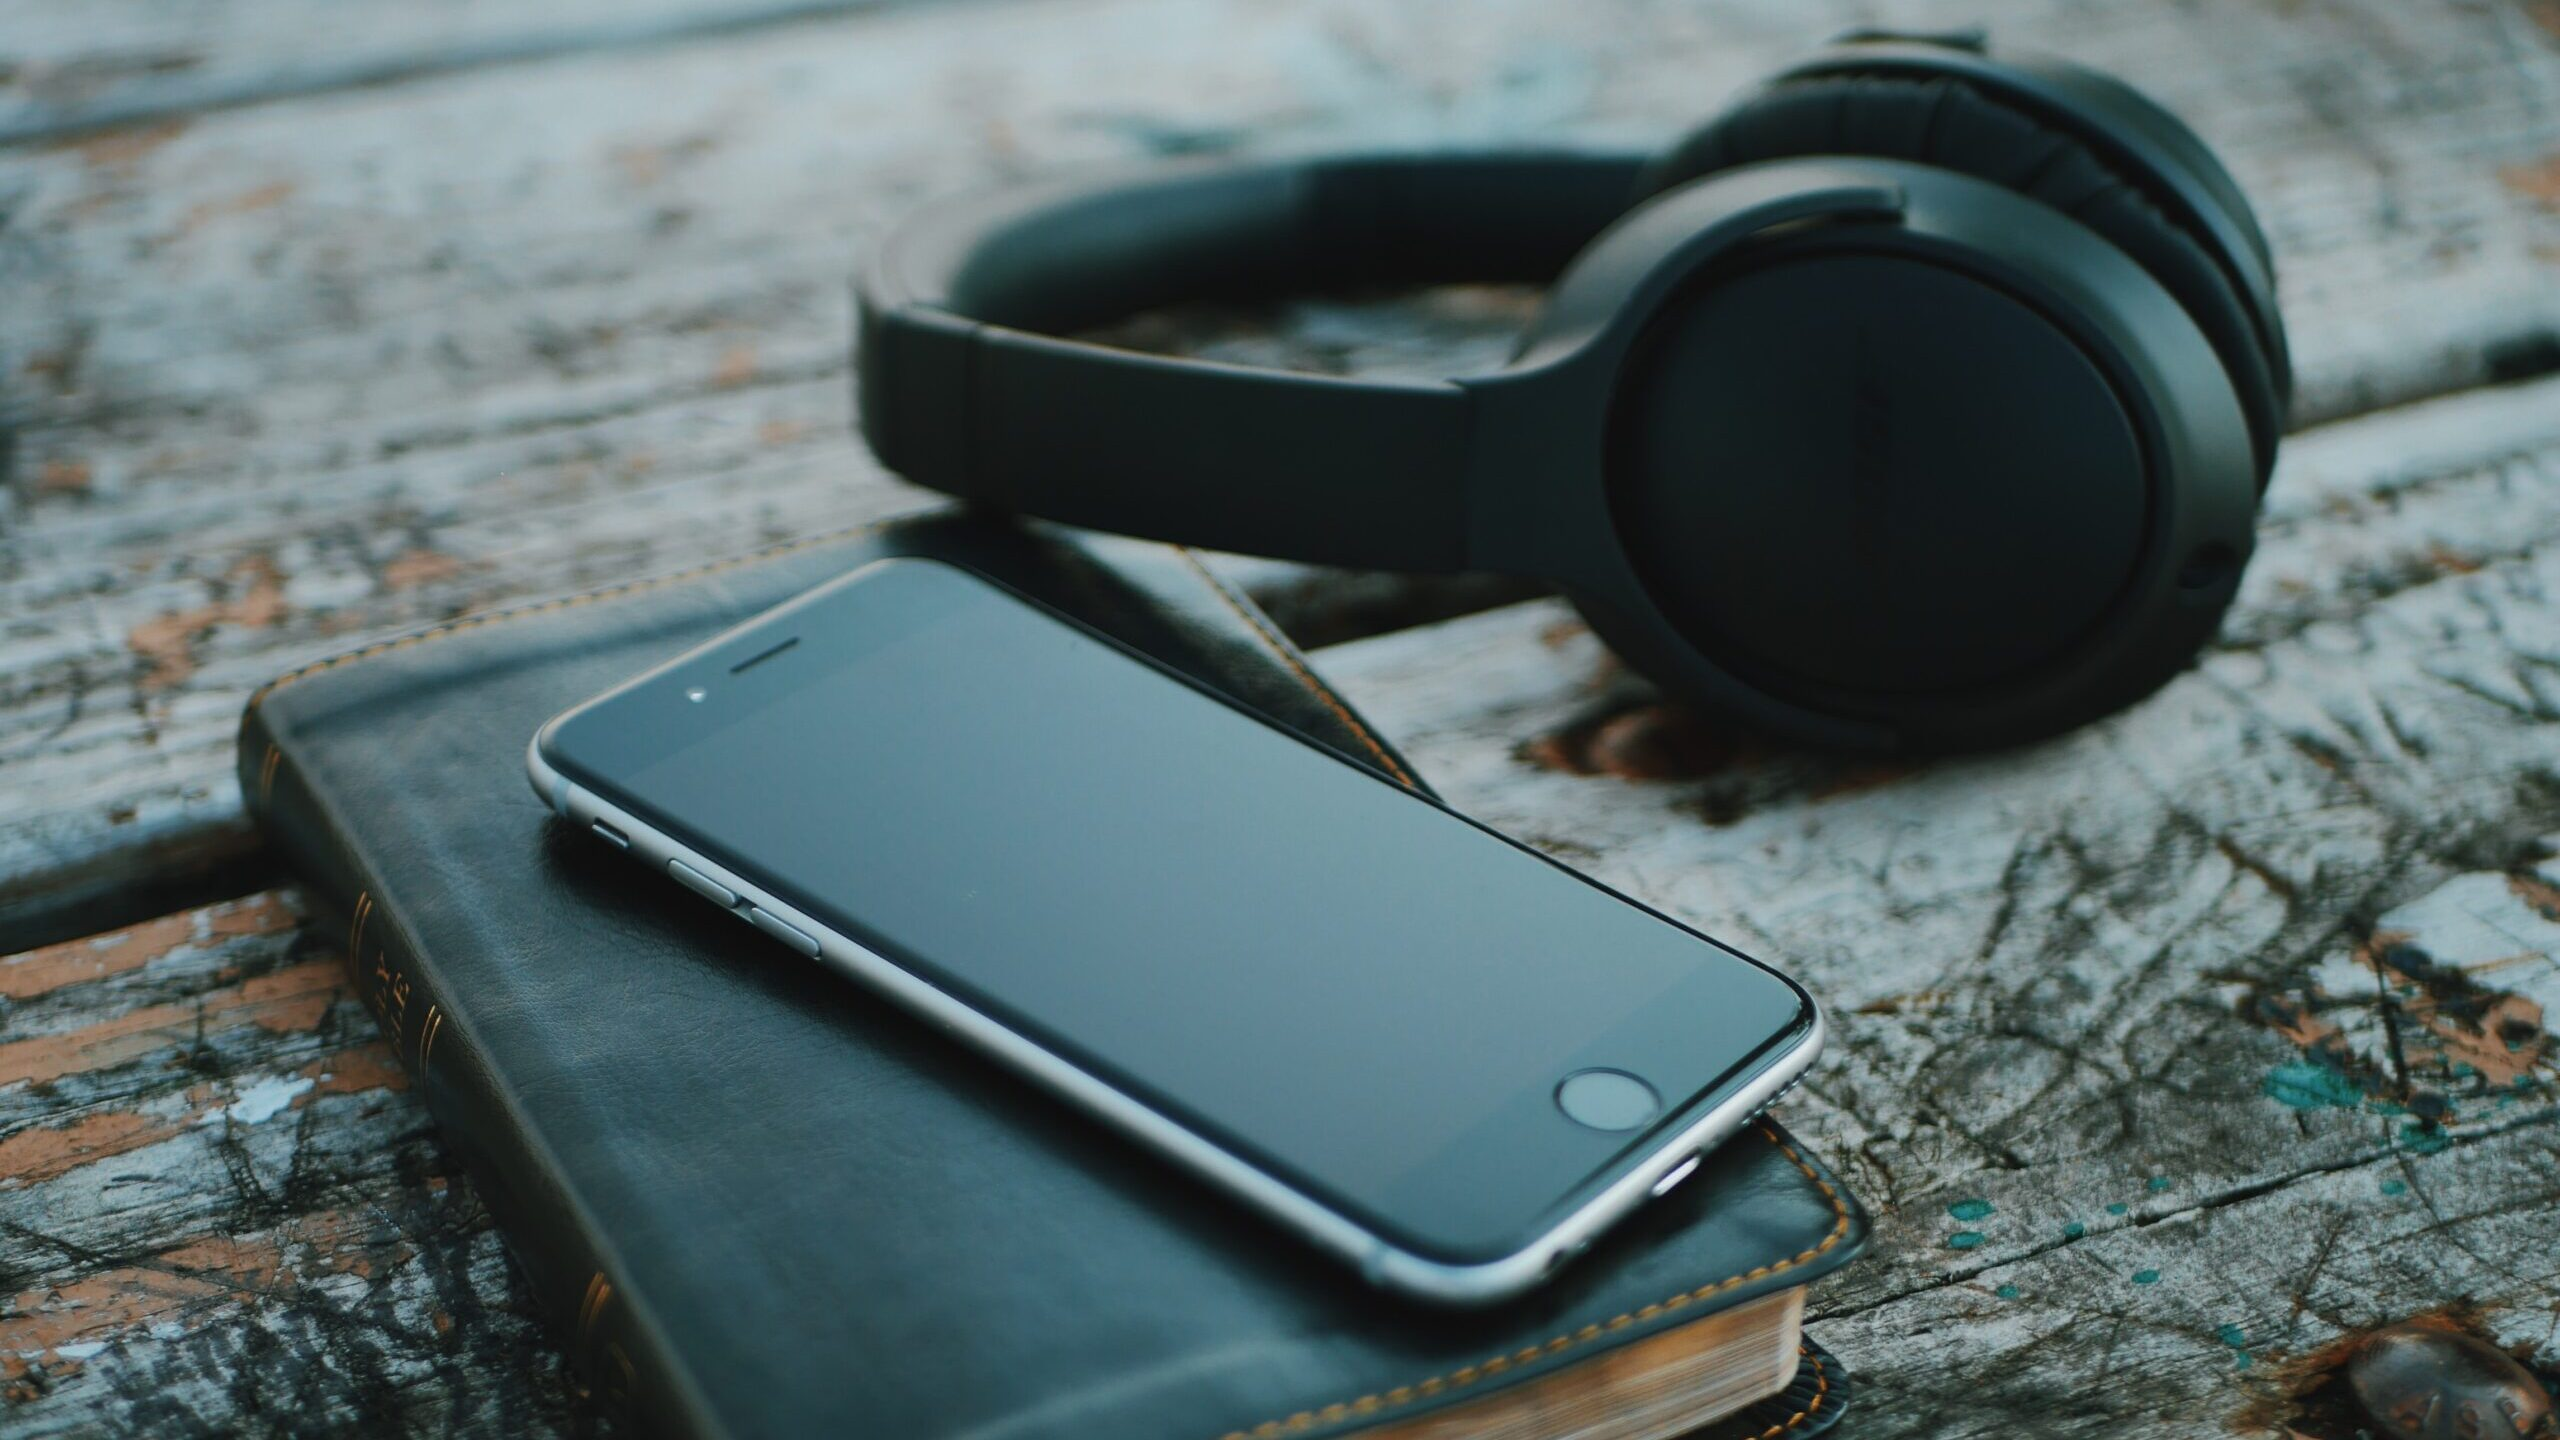 Apple Music or Spotify: Which should you choose?